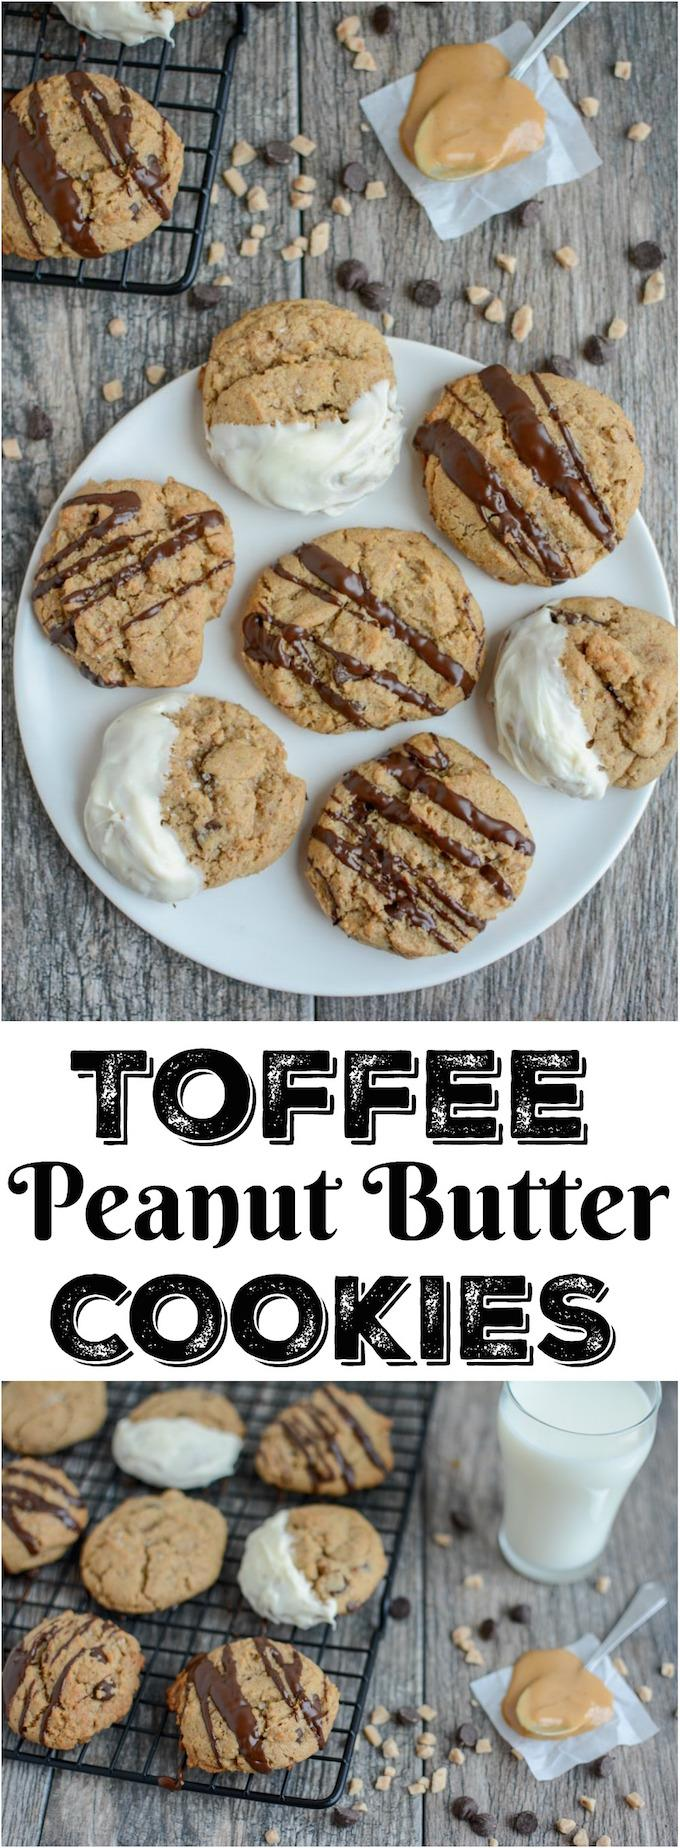 These Toffee Peanut Butter Chocolate Chip Cookies can be enjoyed plain or drizzle with chocolate. They're the perfect addition to a party or a Christmas dessert tray.